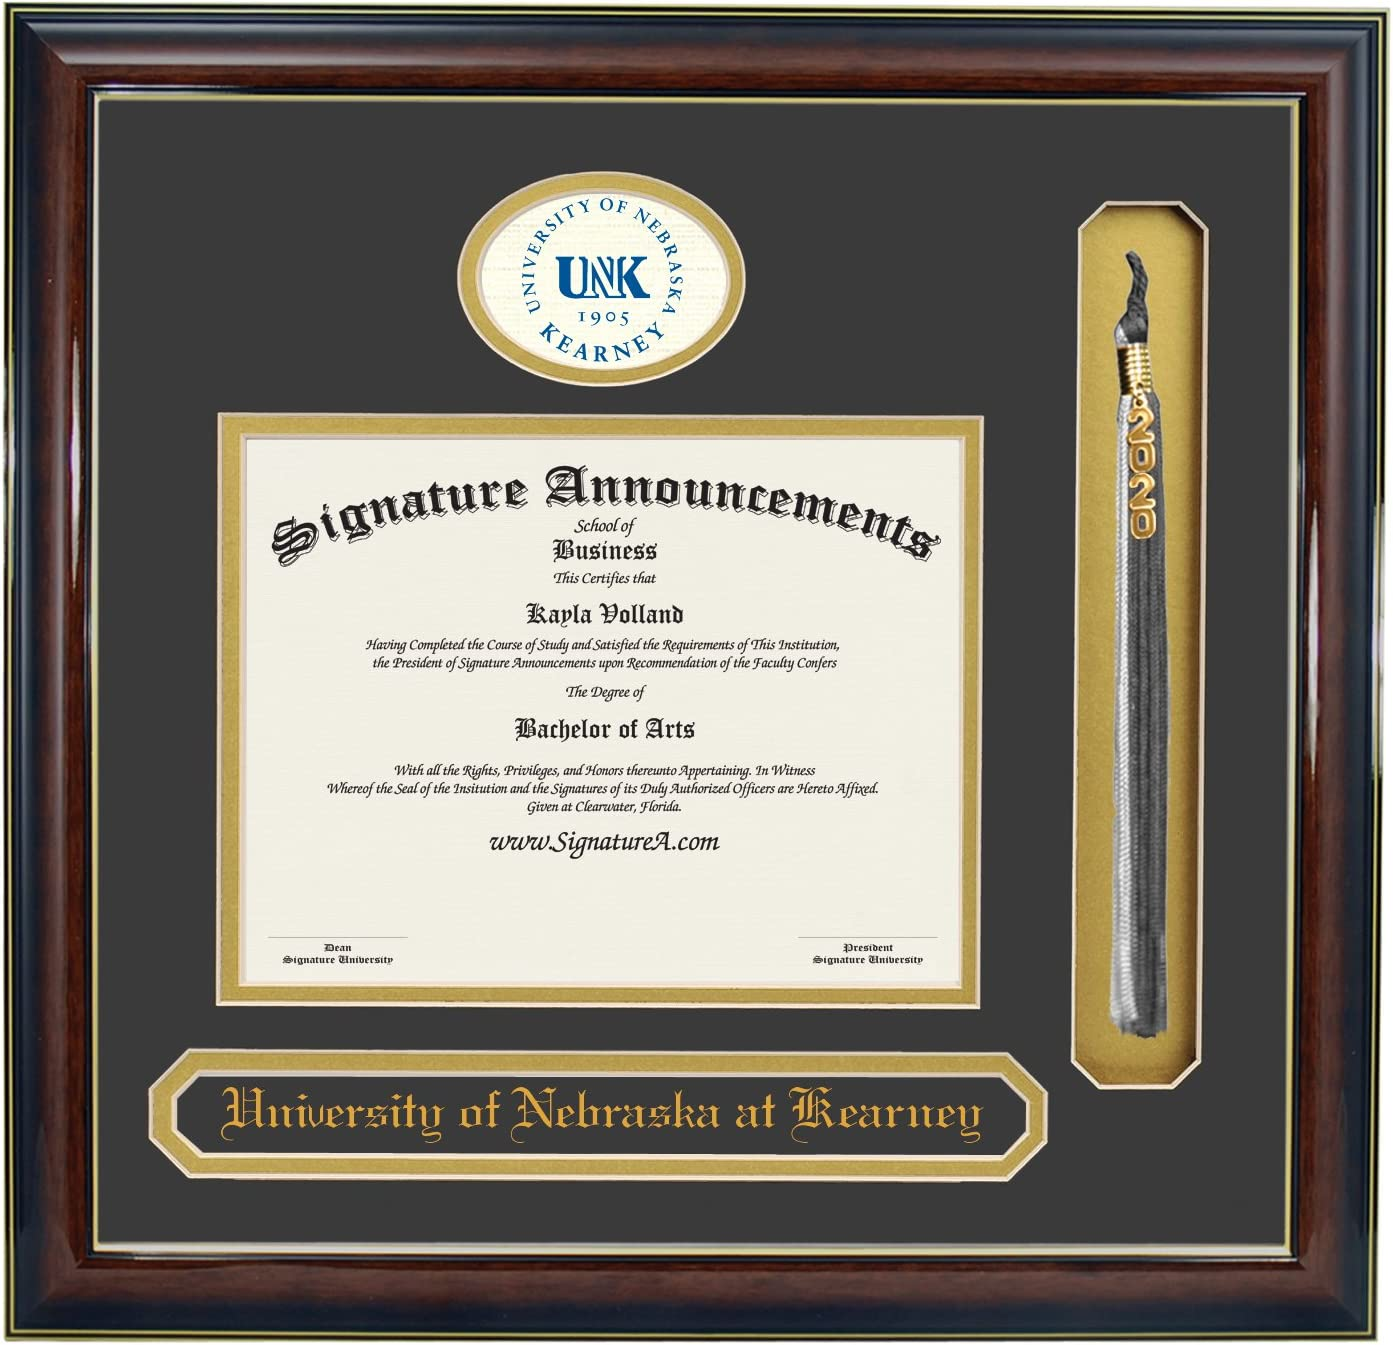 Professional//Doctor Sculpted Foil Seal Graduation Diploma Frame 16 x 16 Matte Mahogany Signature Announcements University-of-Nebraska-at-Kearney Undergraduate